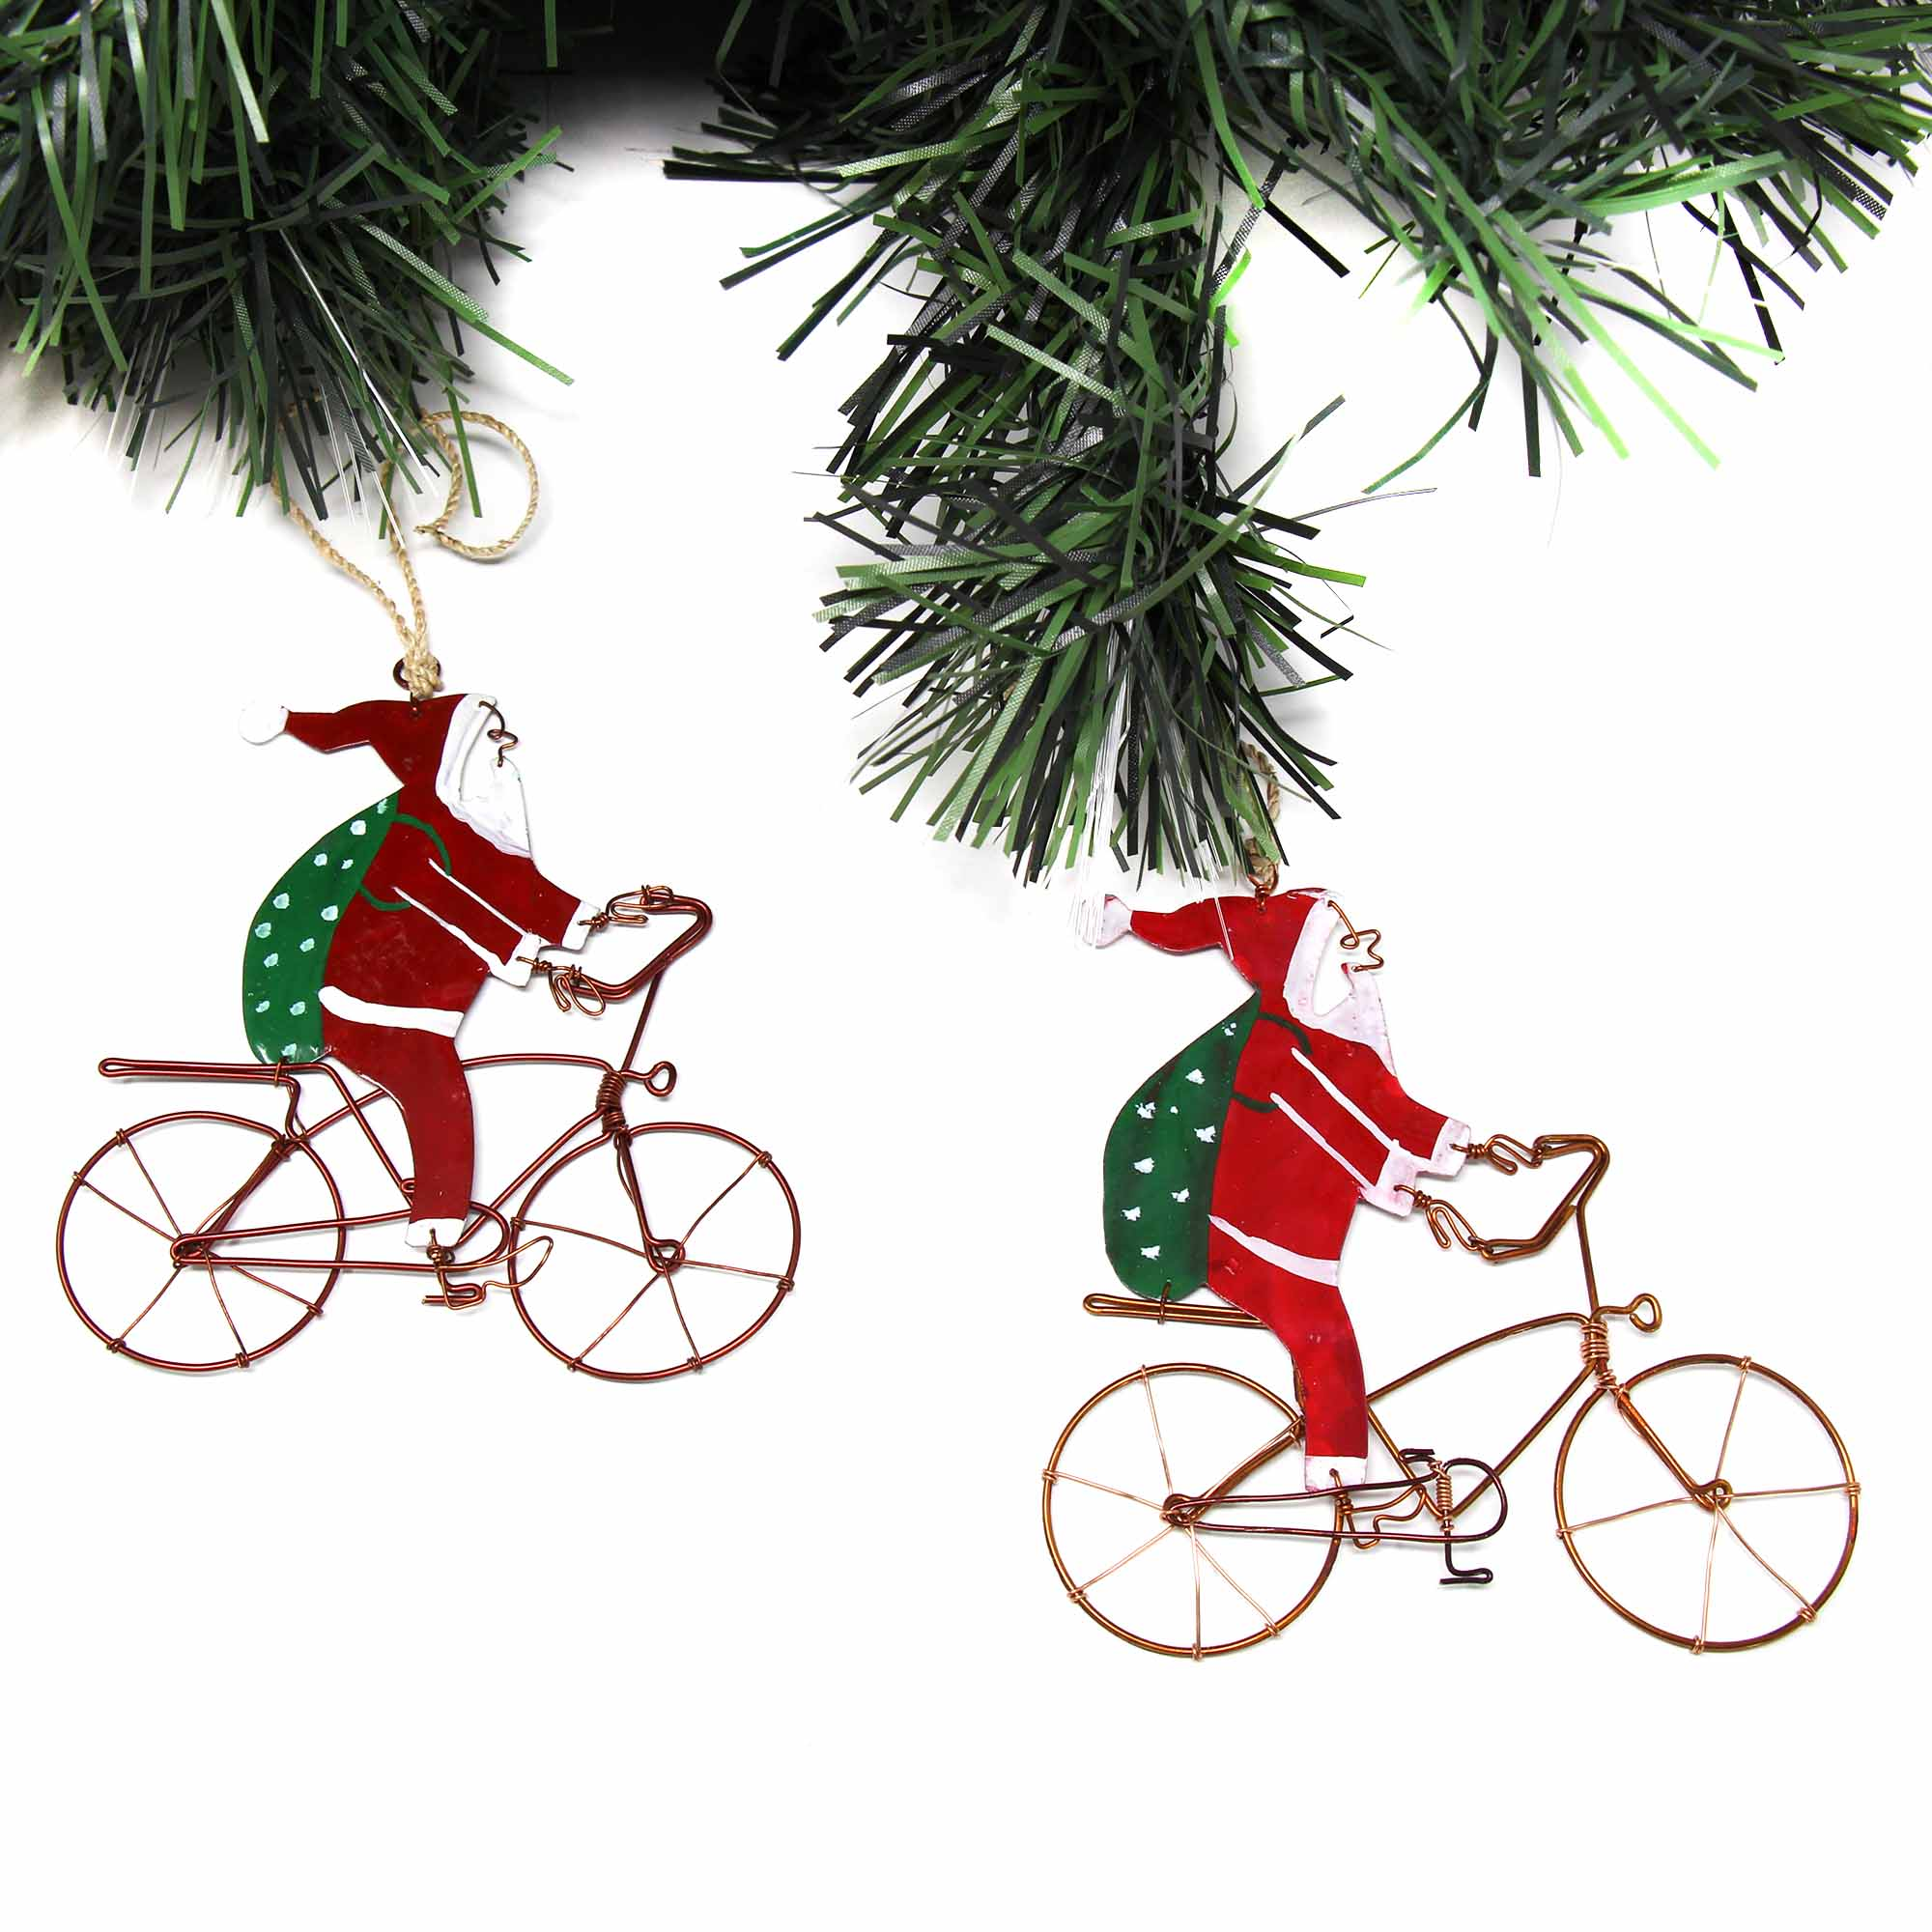 Recycled Santa on bike ornament made in Kenya.